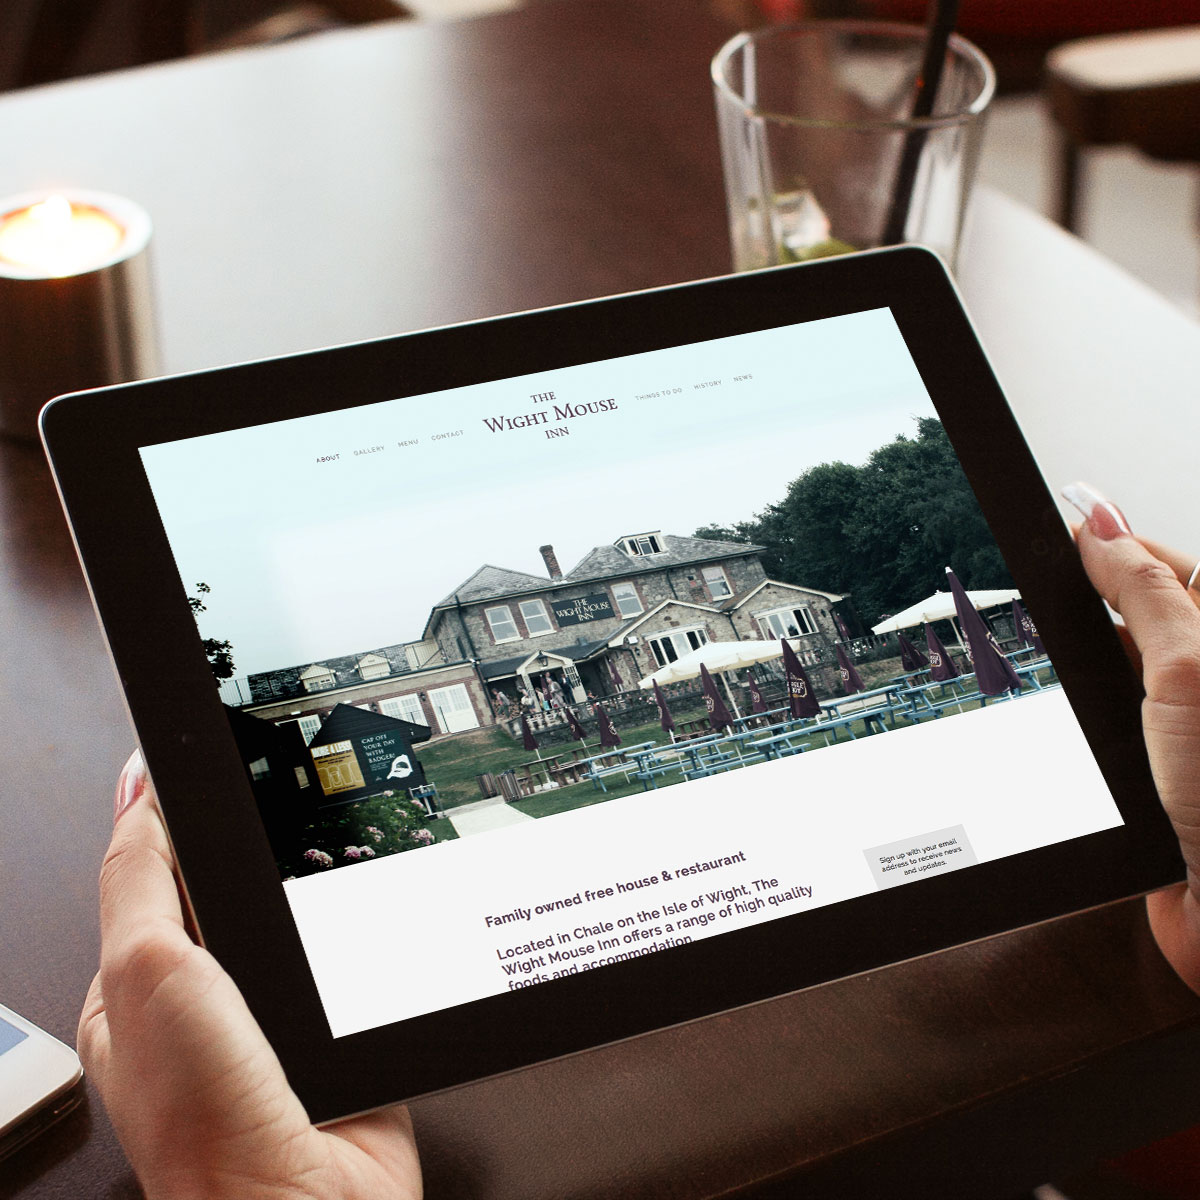 The Wight House Inn website Tablet Display